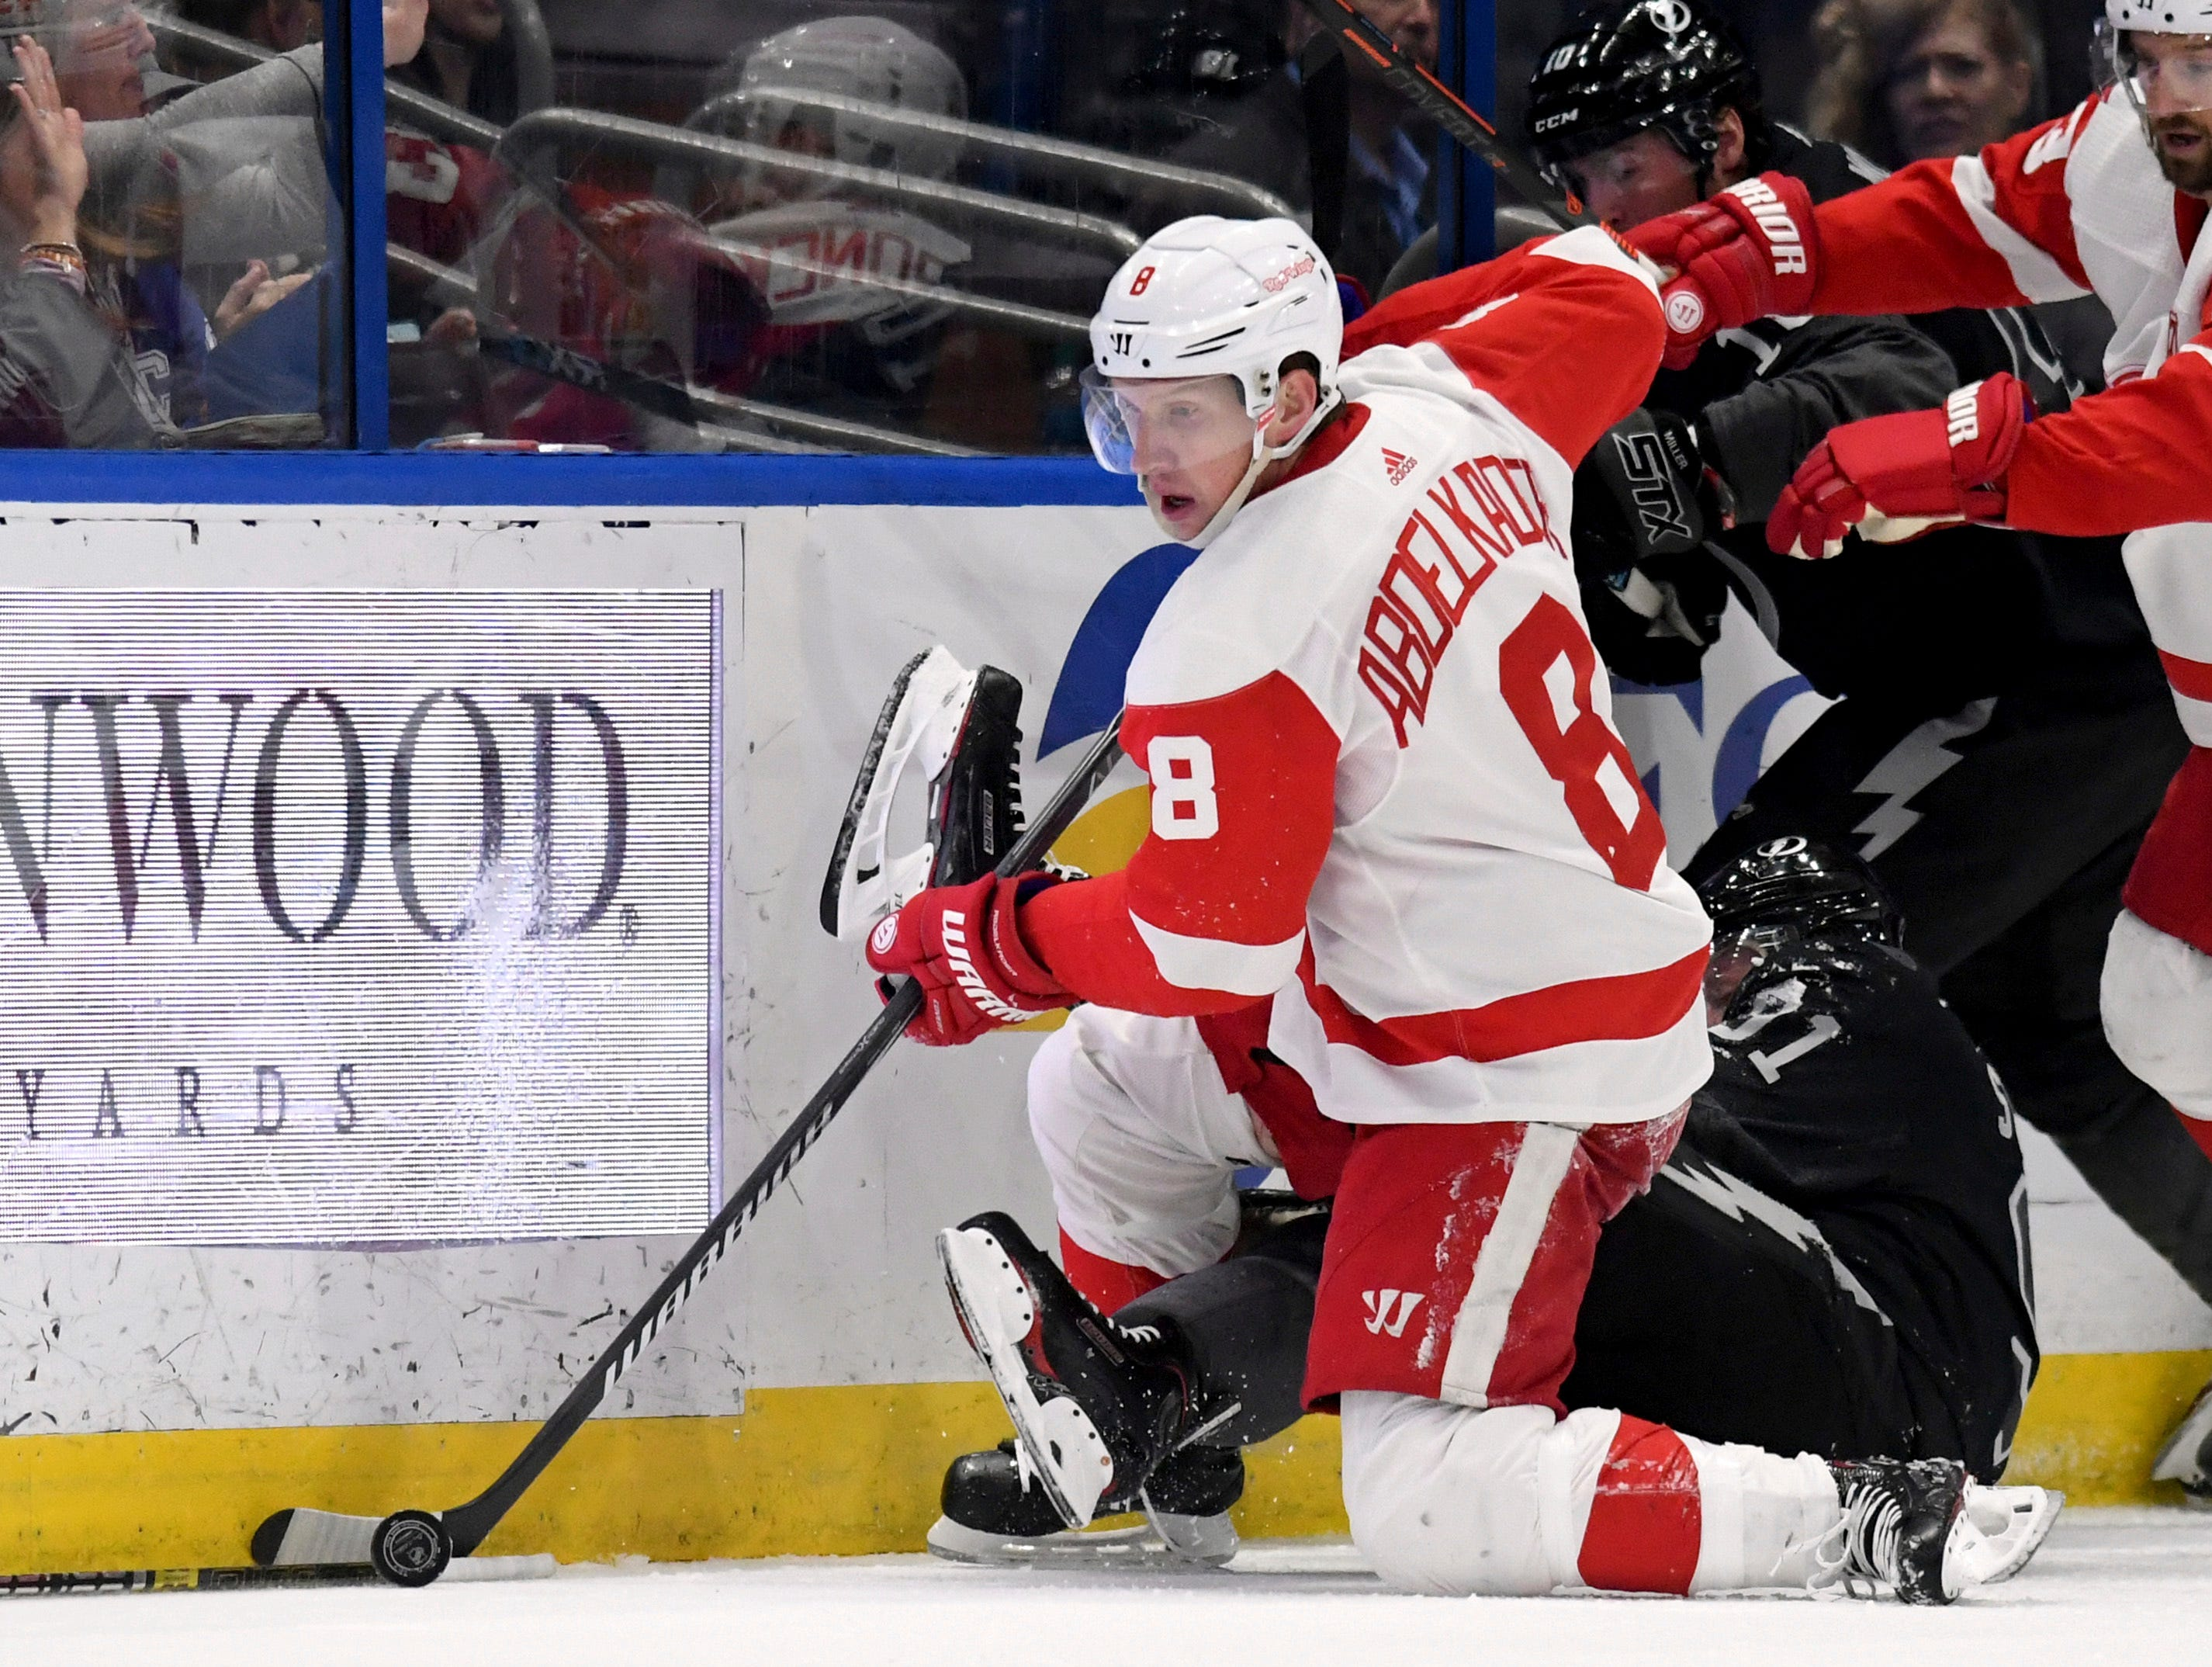 Detroit Red Wings left wing Justin Abdelkader (8) handles the puck along the boards during the first period of an NHL hockey game against the Tampa Bay Lightning Saturday, March 9, 2019, in Tampa, Fla. (AP Photo/Jason Behnken)